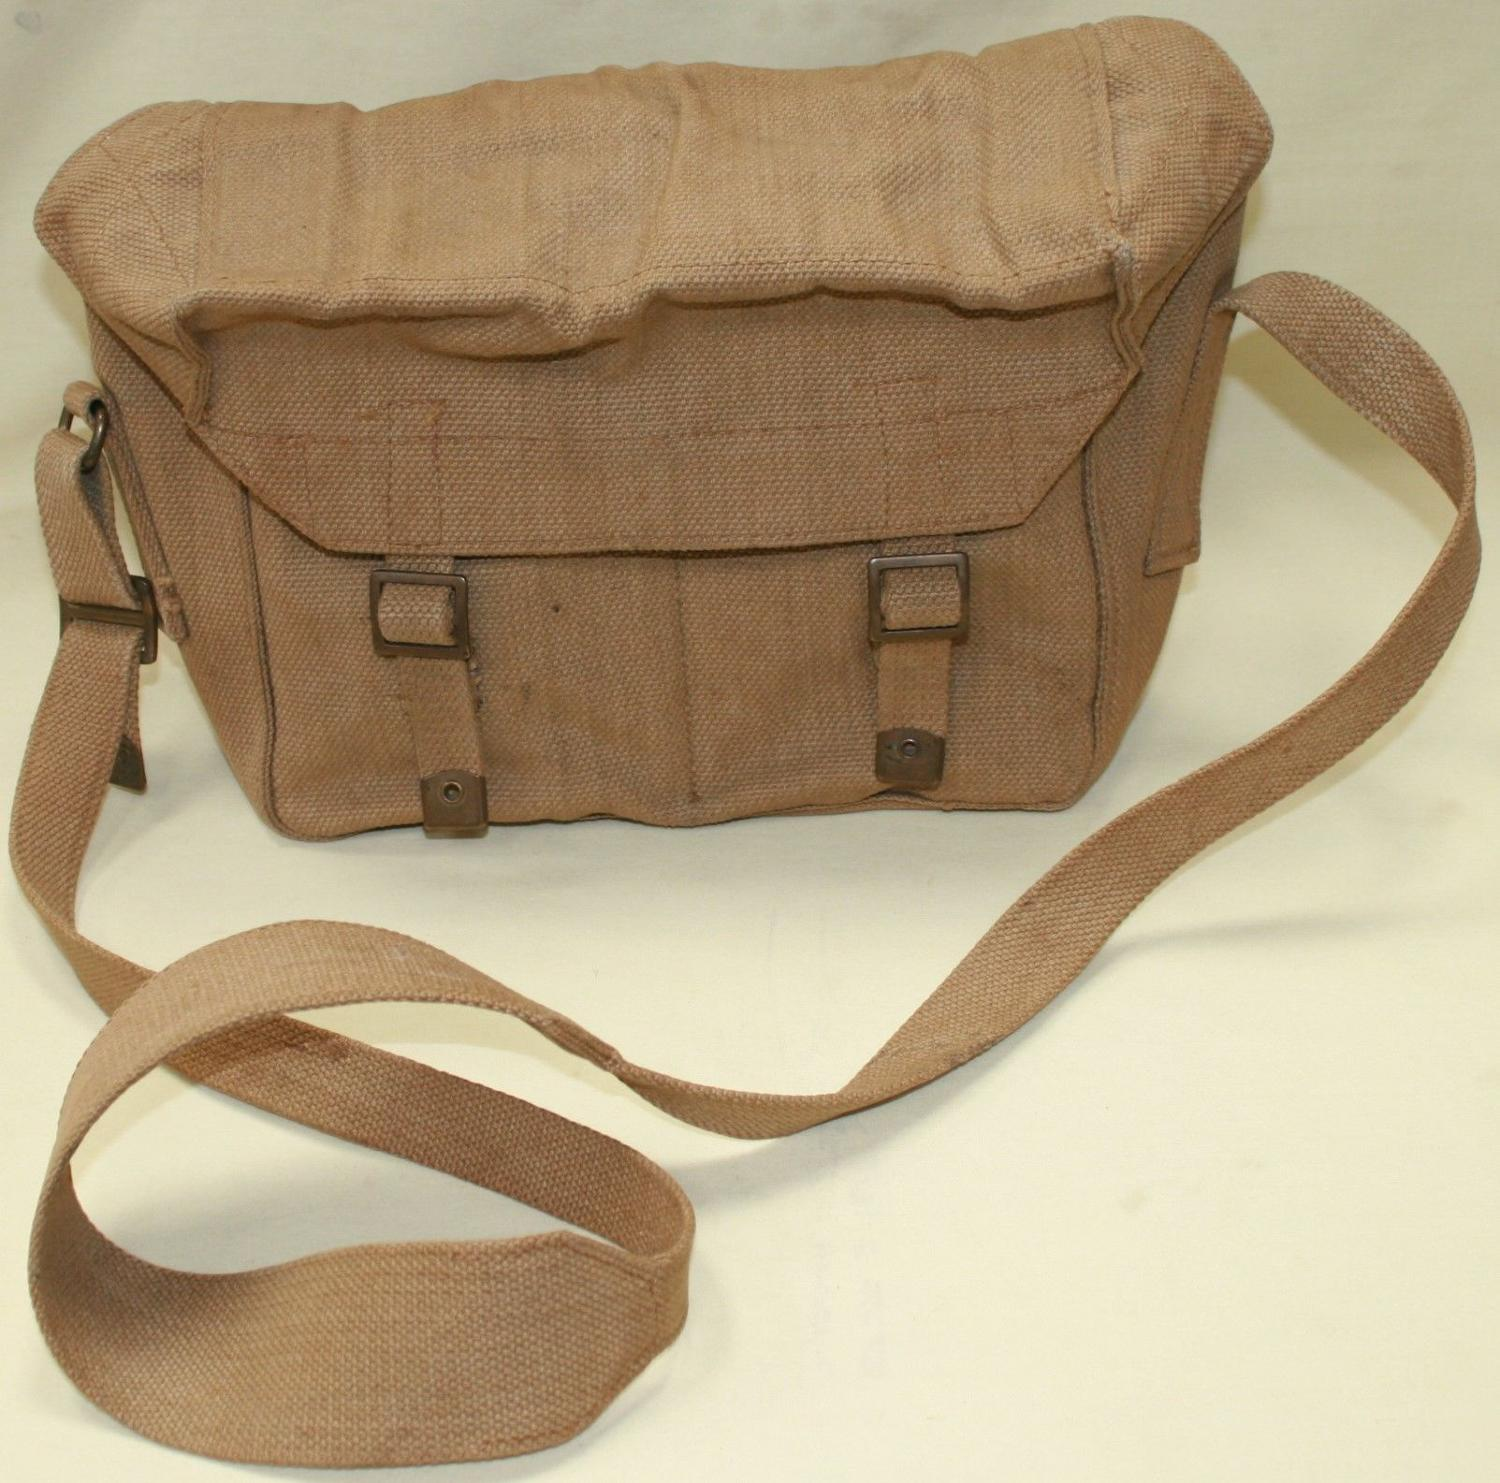 A WWII PERIOD BATTERY RADIO BAG